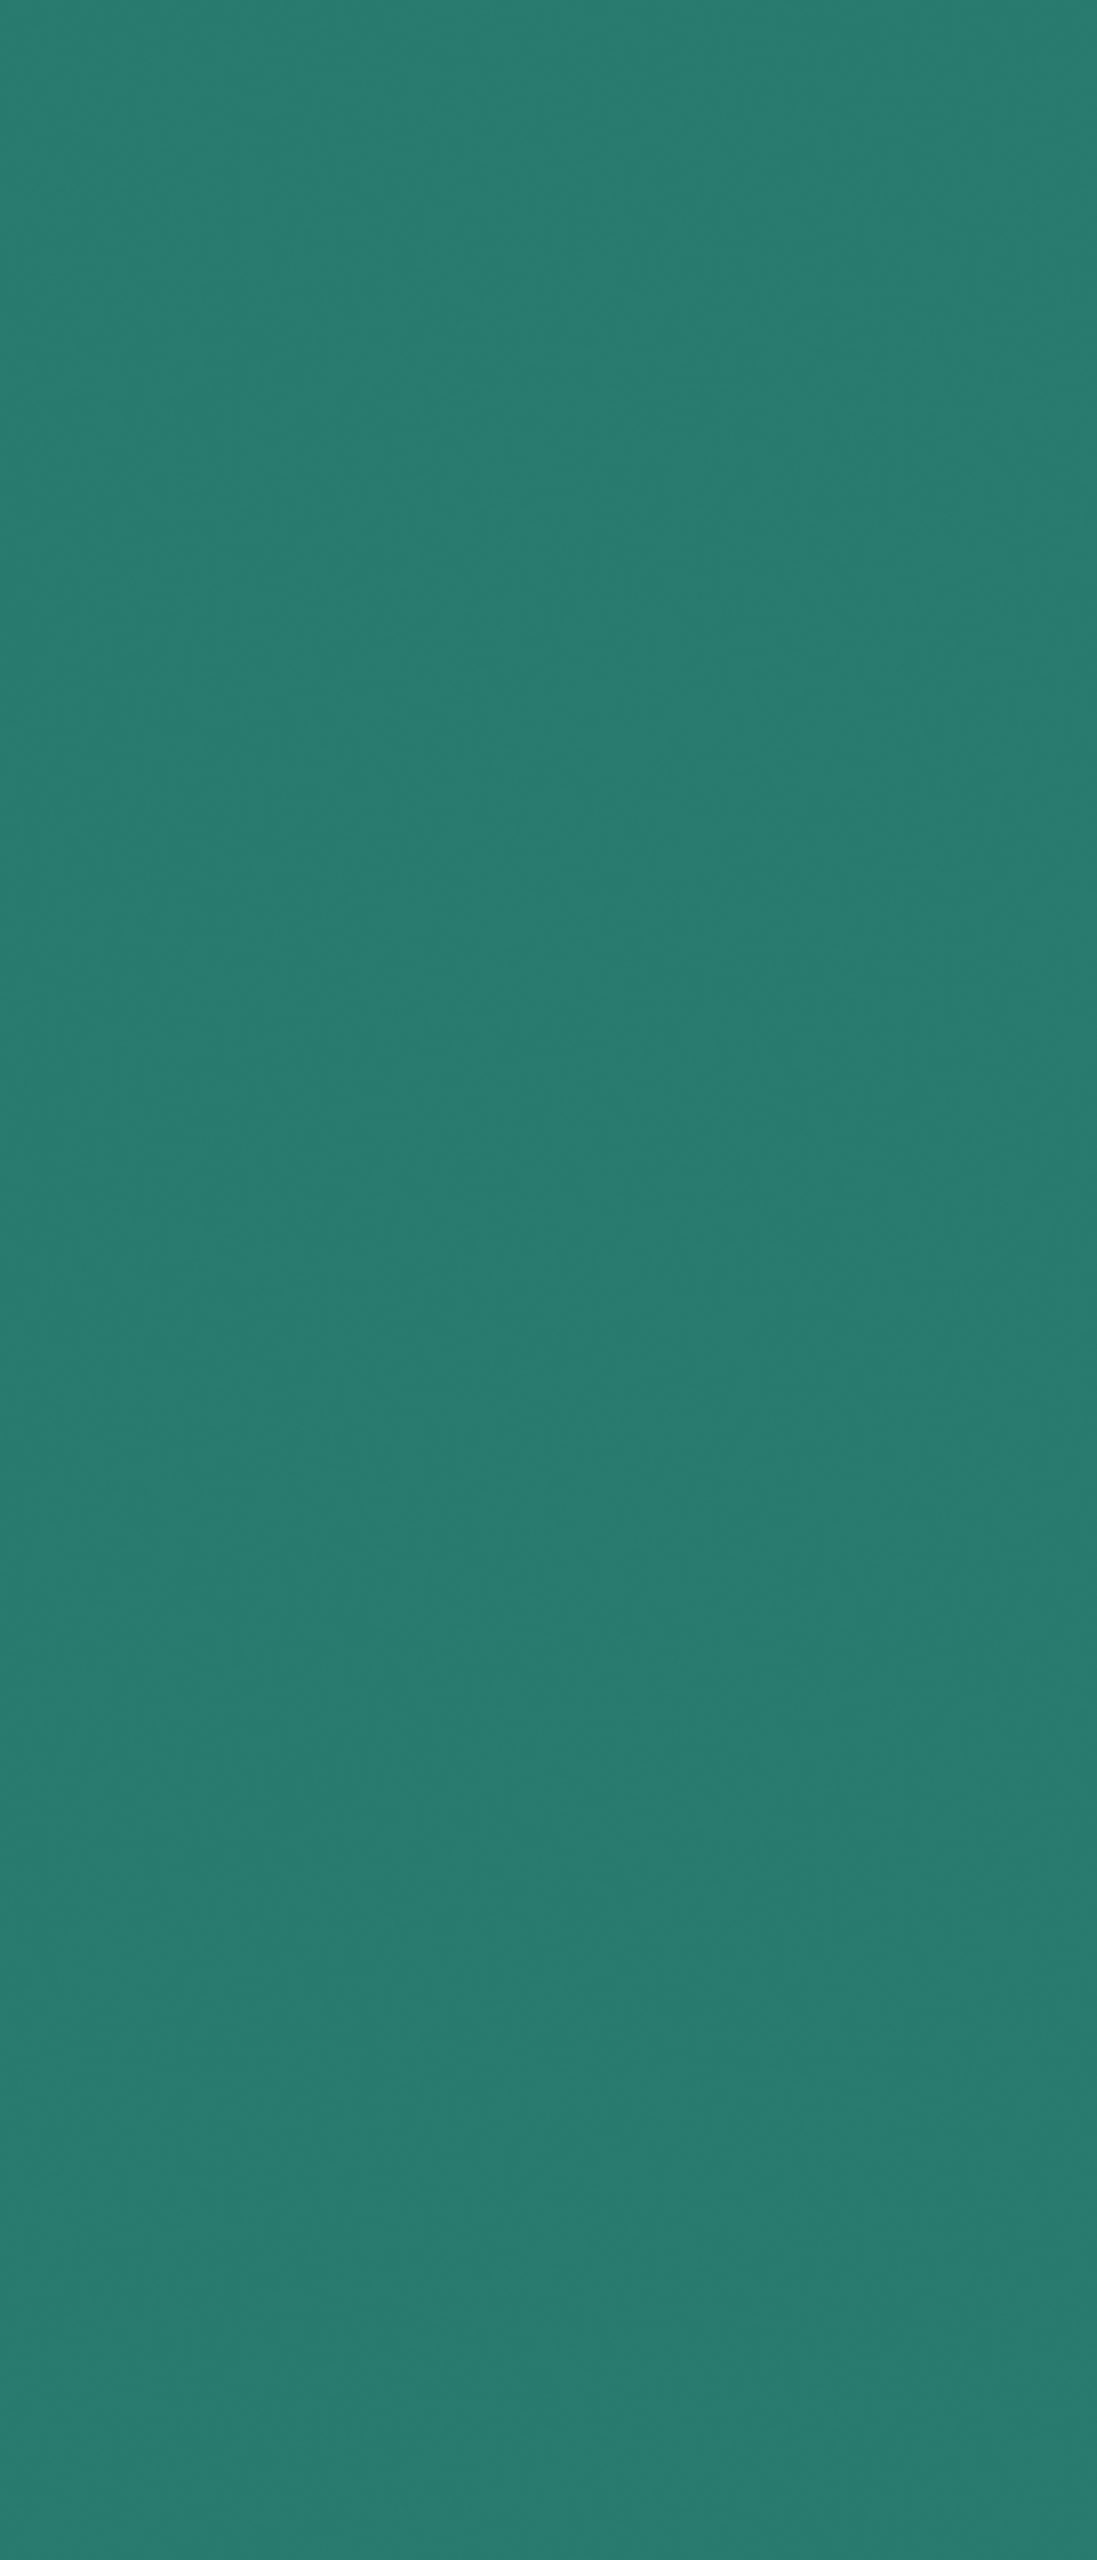 Buildtech 2.0 Bold Colors Teal Glossy 6mm 120 x 280